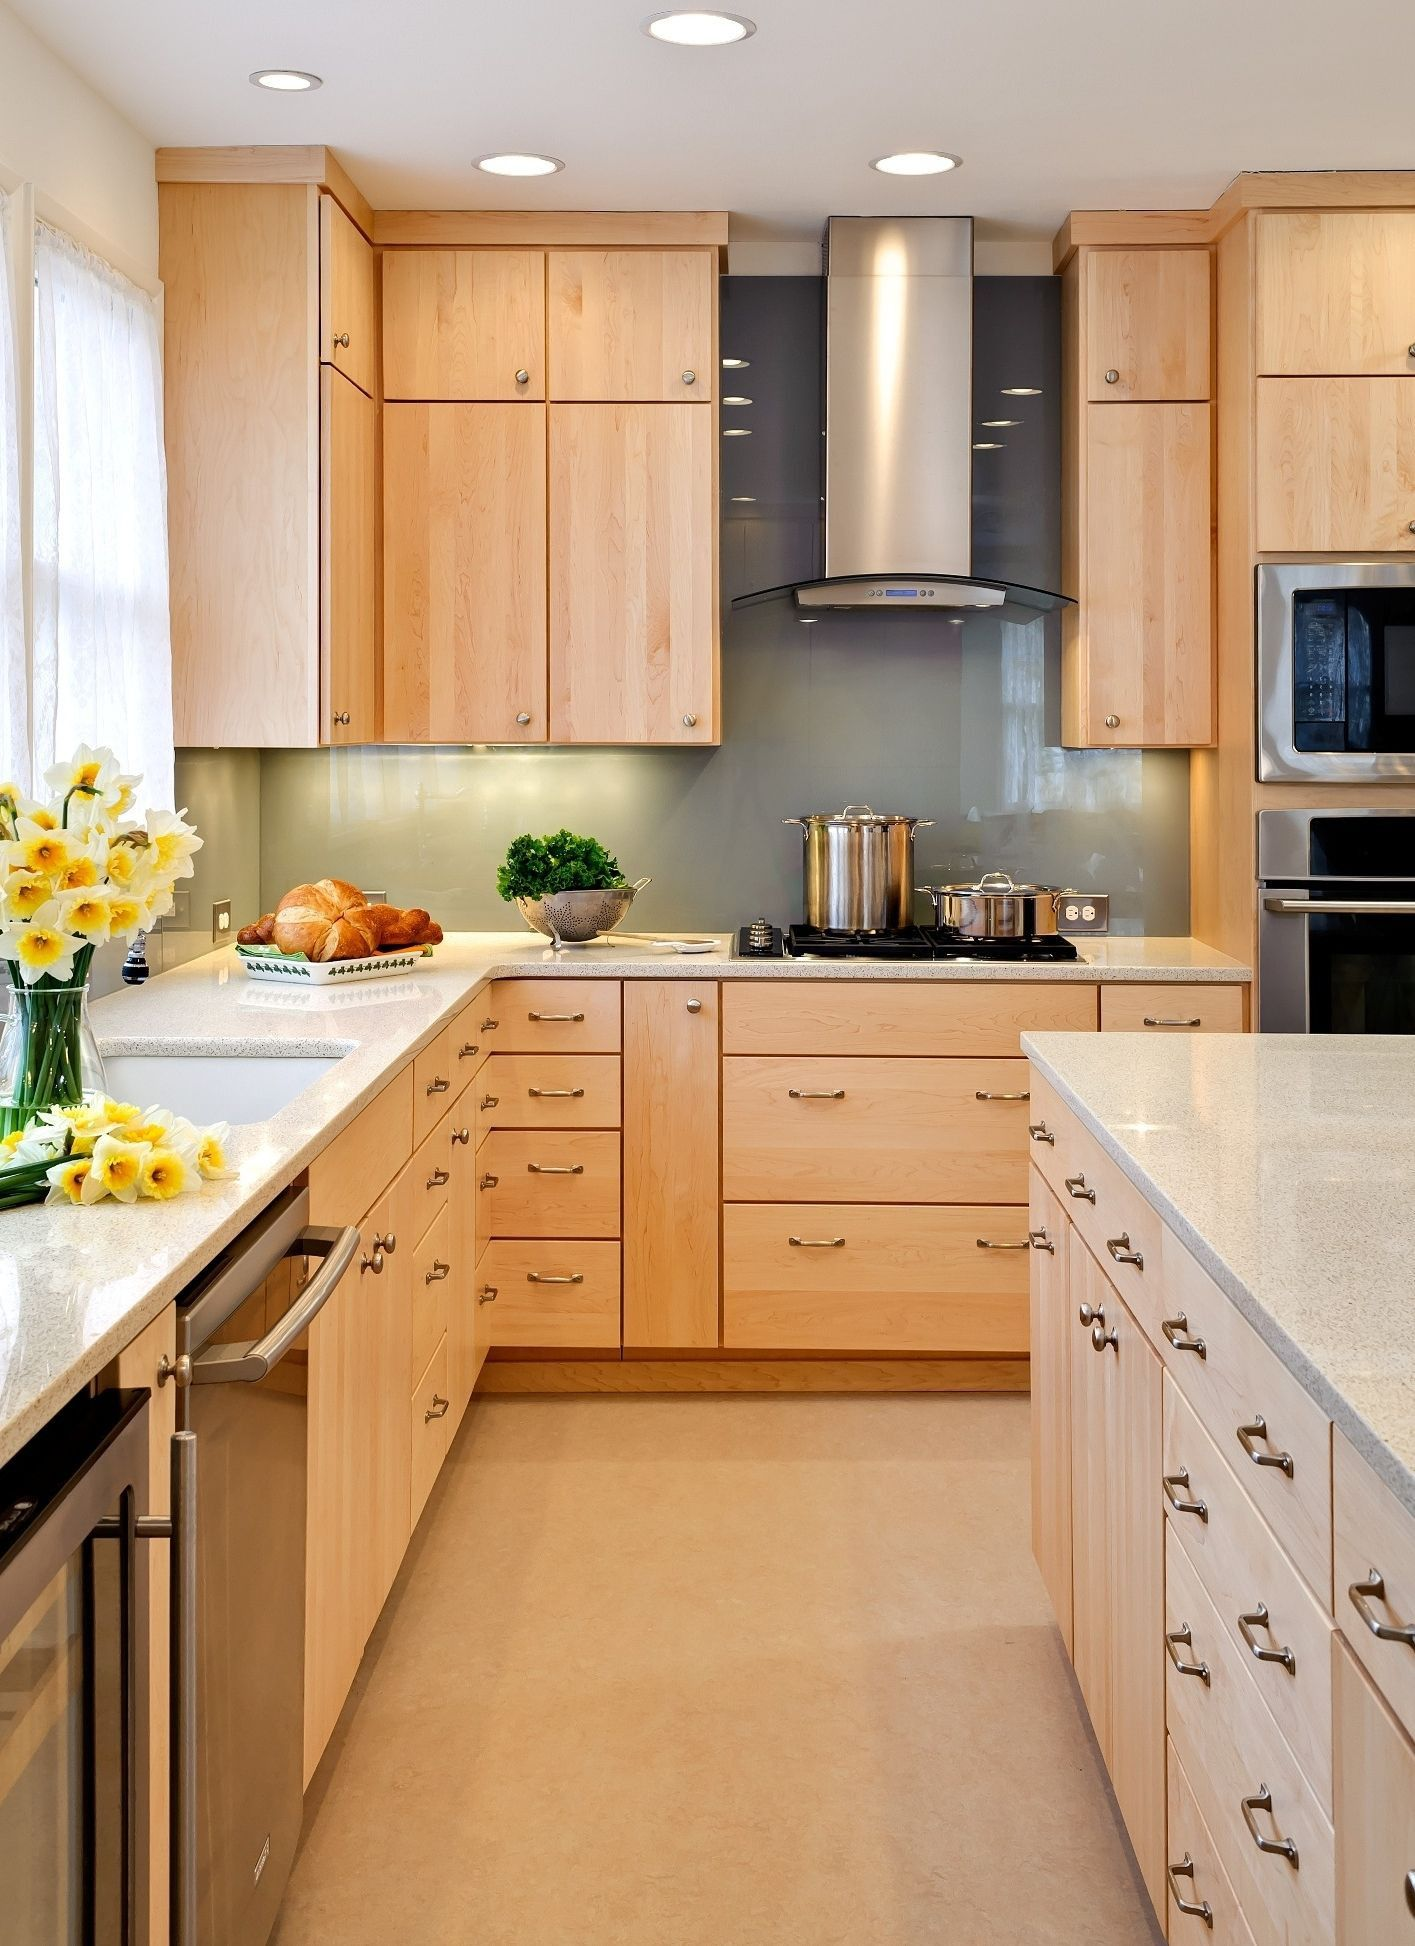 Flat Front Kitchen Cabinets Maple Flat Front Cabinets Modern Kitchen Decor Pinterest